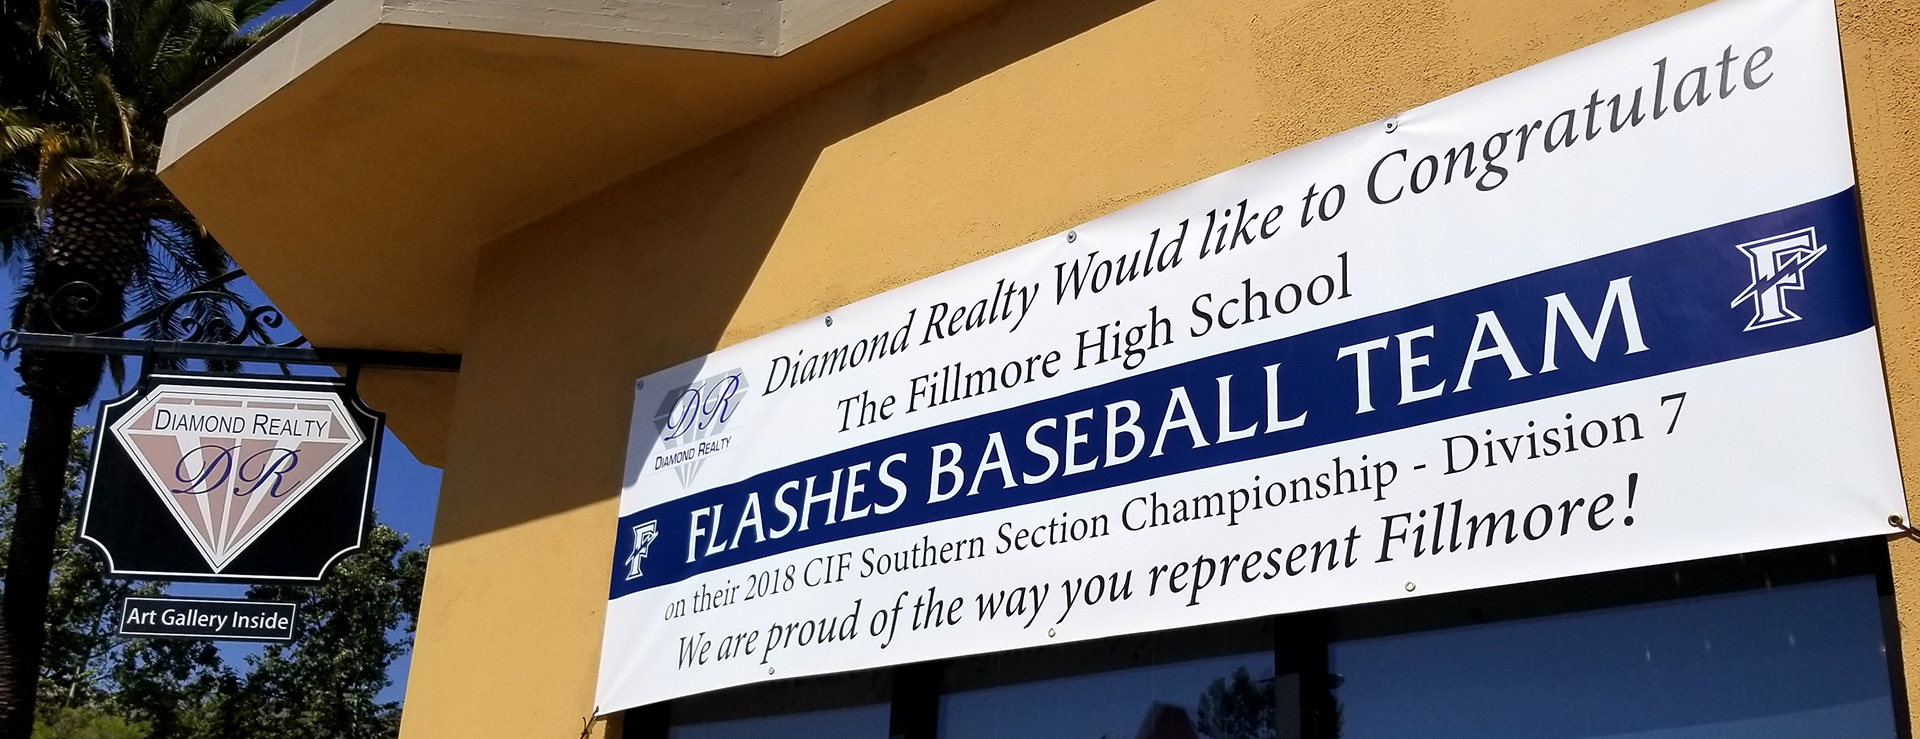 The FHS Boys Baseball CIF Championship banner in front of Diamond Realty's office in Fillmore.